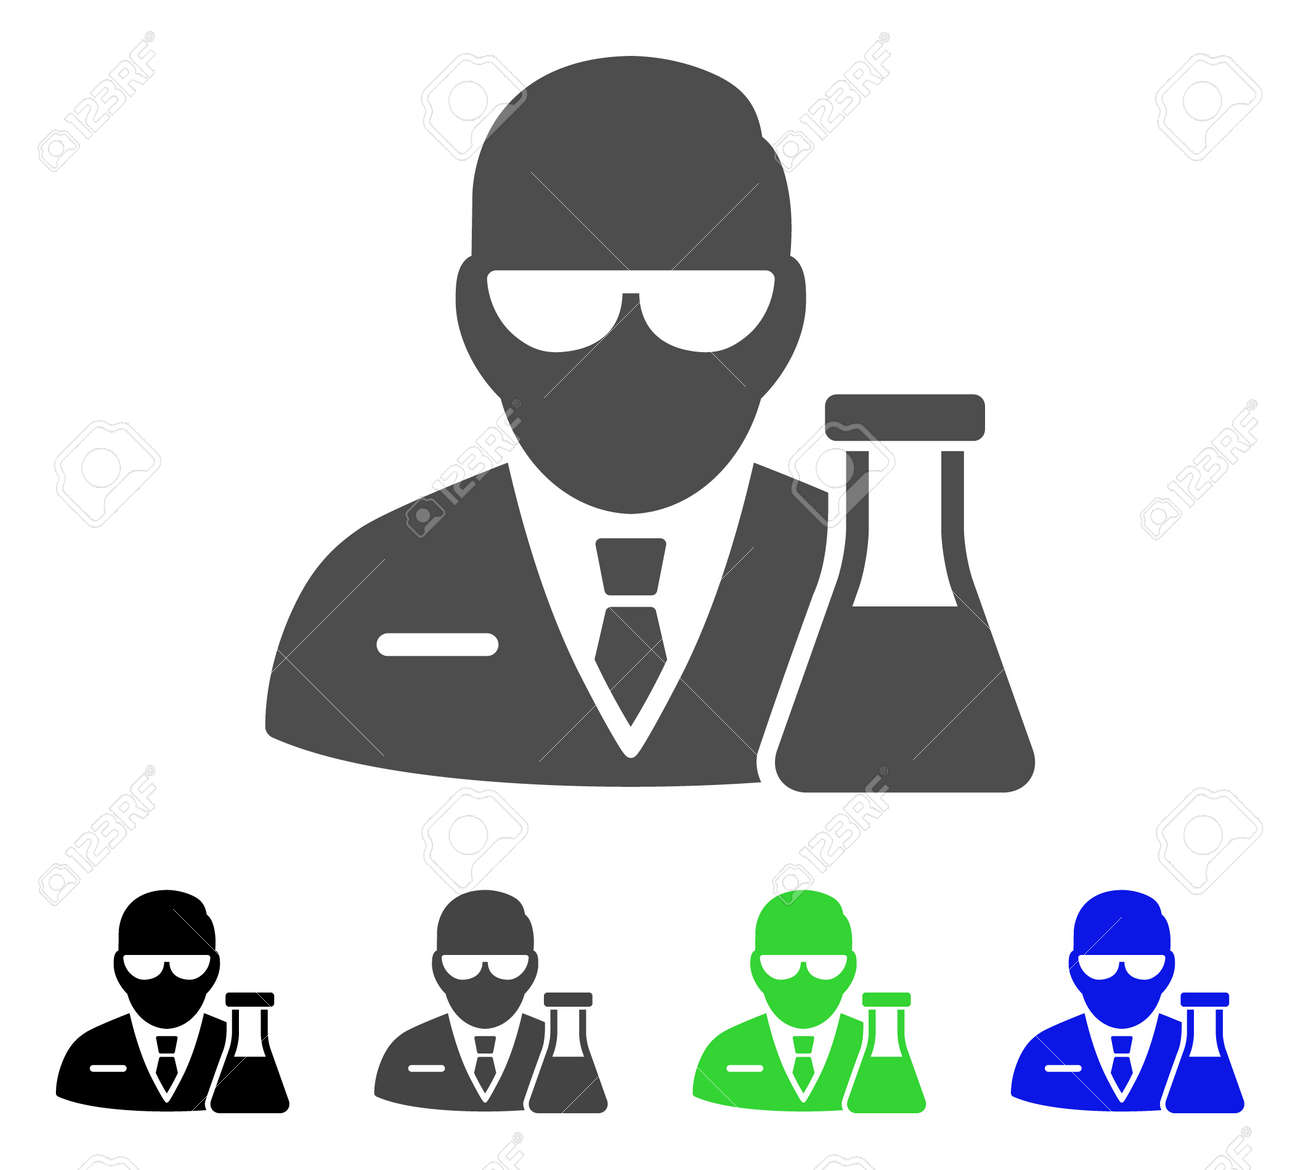 chemical scientist vector icon style is a flat graphic symbol royalty free cliparts vectors and stock illustration image 85050550 123rf com